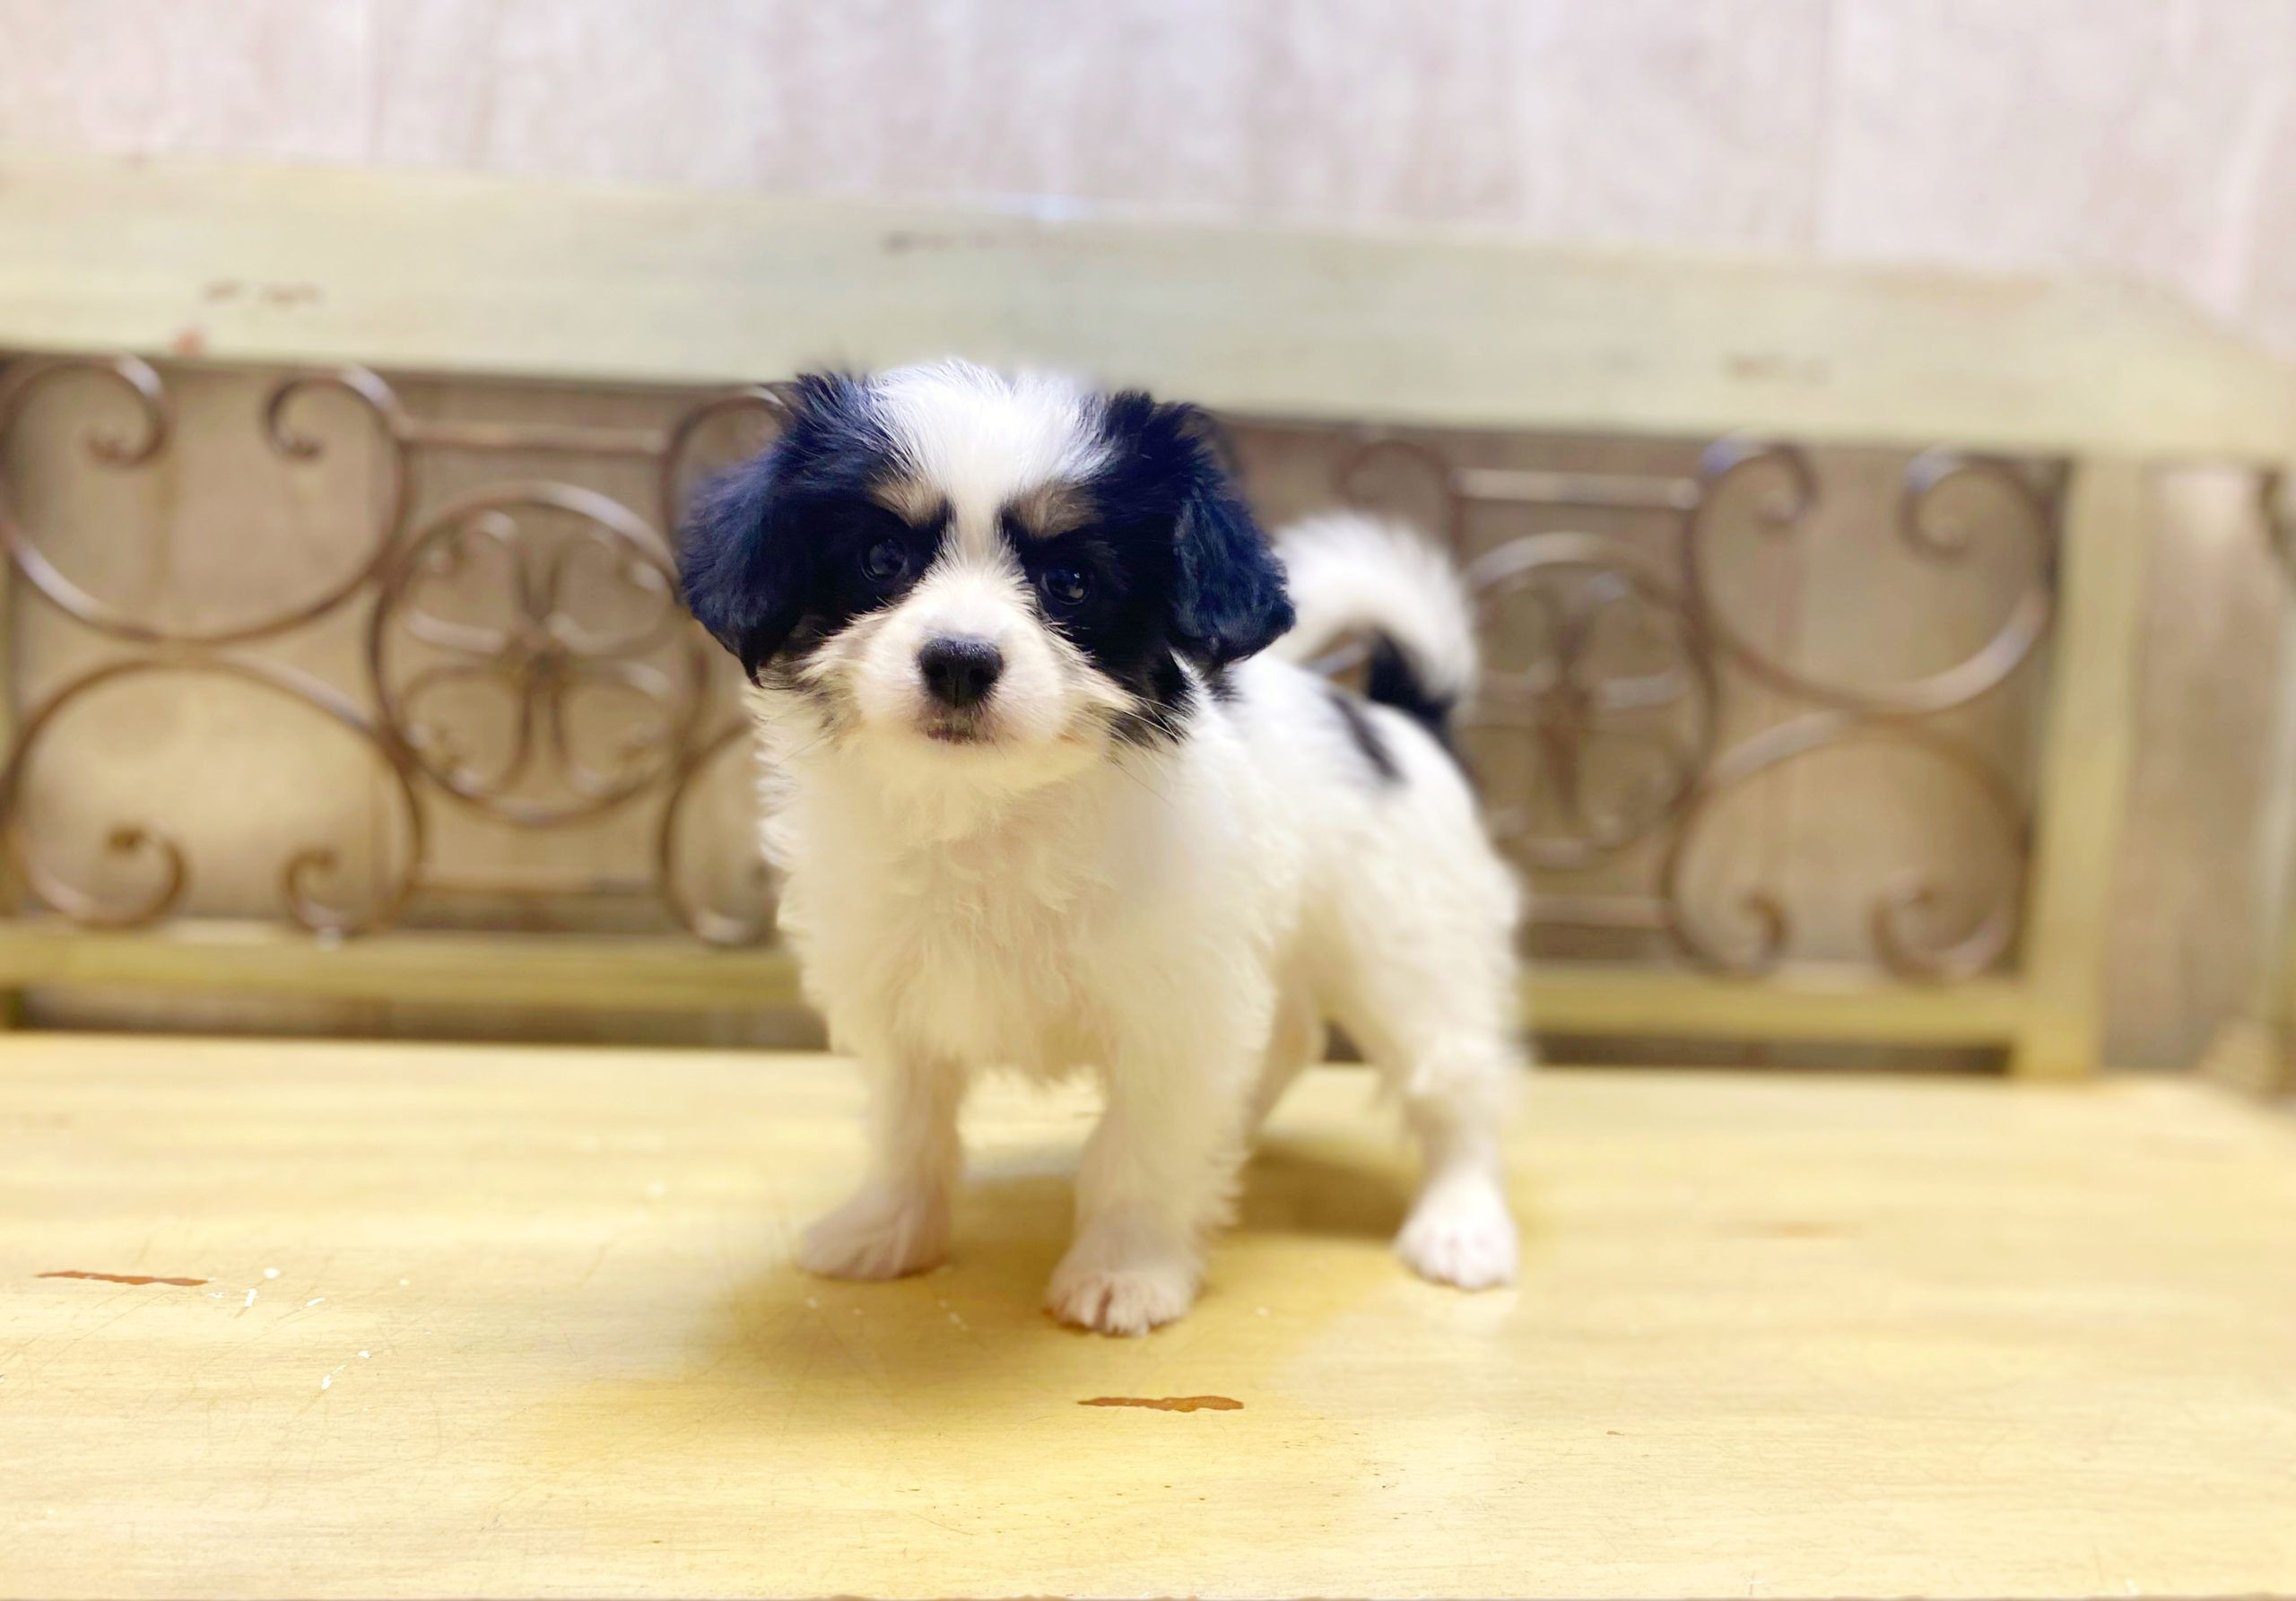 Available Puppies Puppies For Sale In Orlando, Fl in